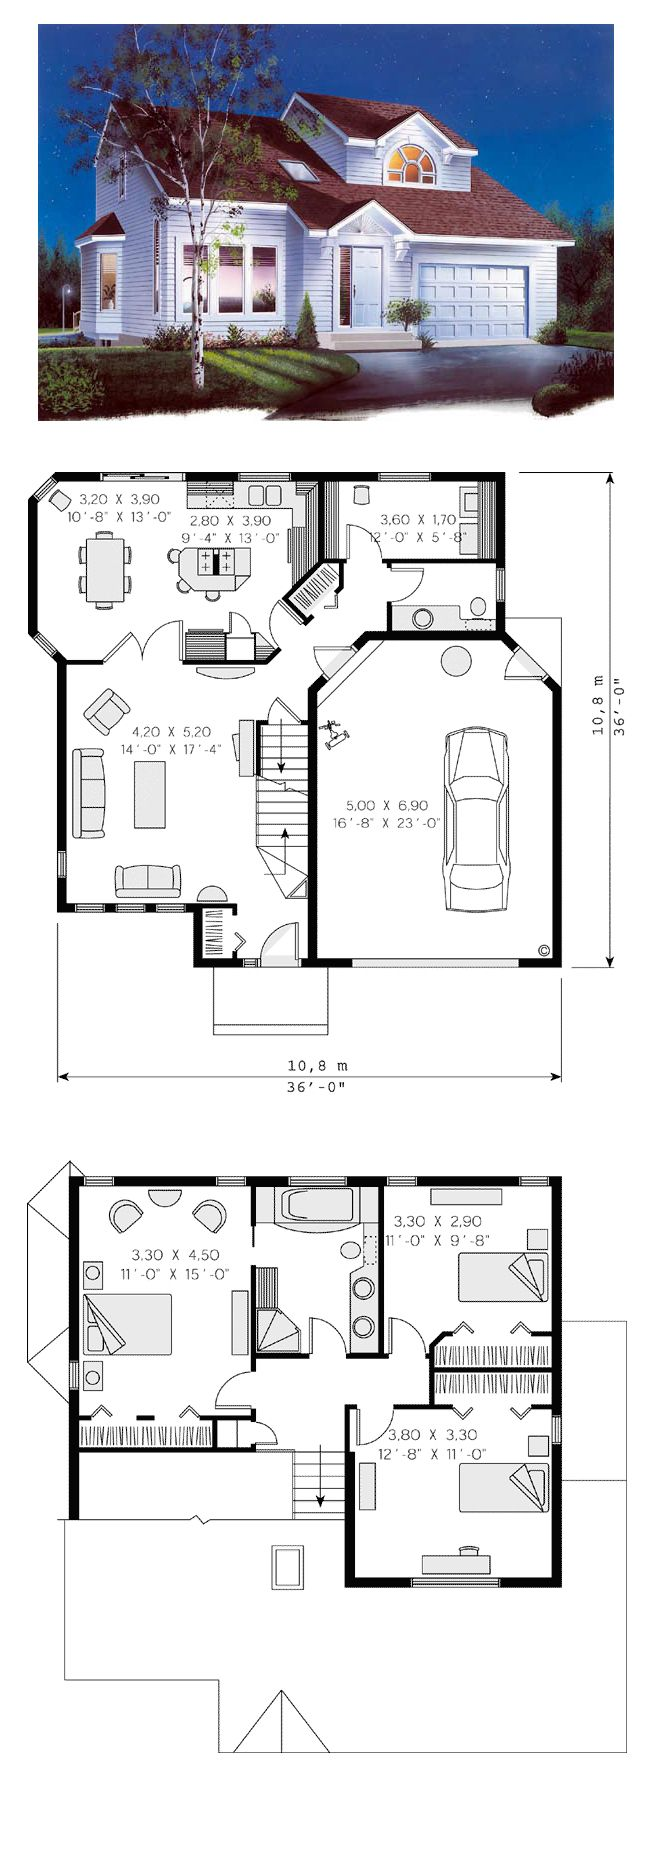 45 best saltbox house plans images on pinterest Saltbox garage plans